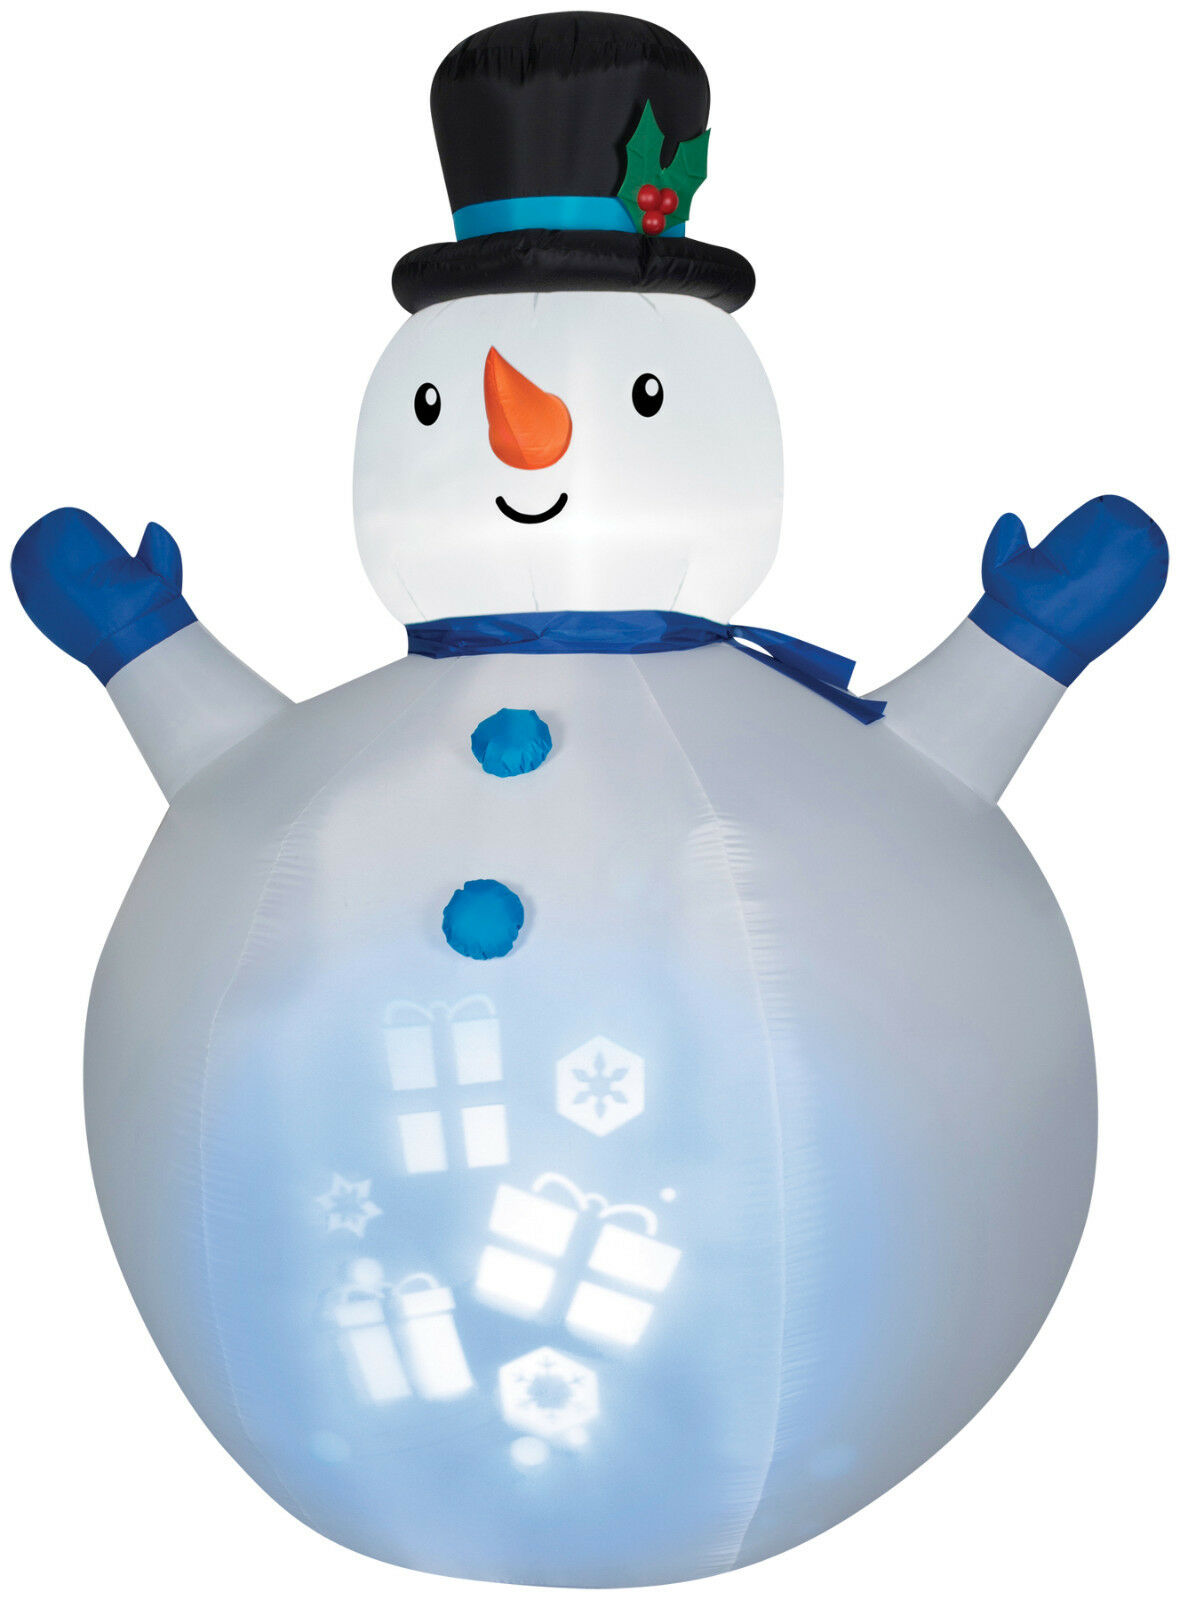 CHRISTMAS CHRISTMAS CHRISTMAS SANTA PROJECTION SNOWMAN  AIRBLOWN INFLATABLE YARD DECORATION c6cef5